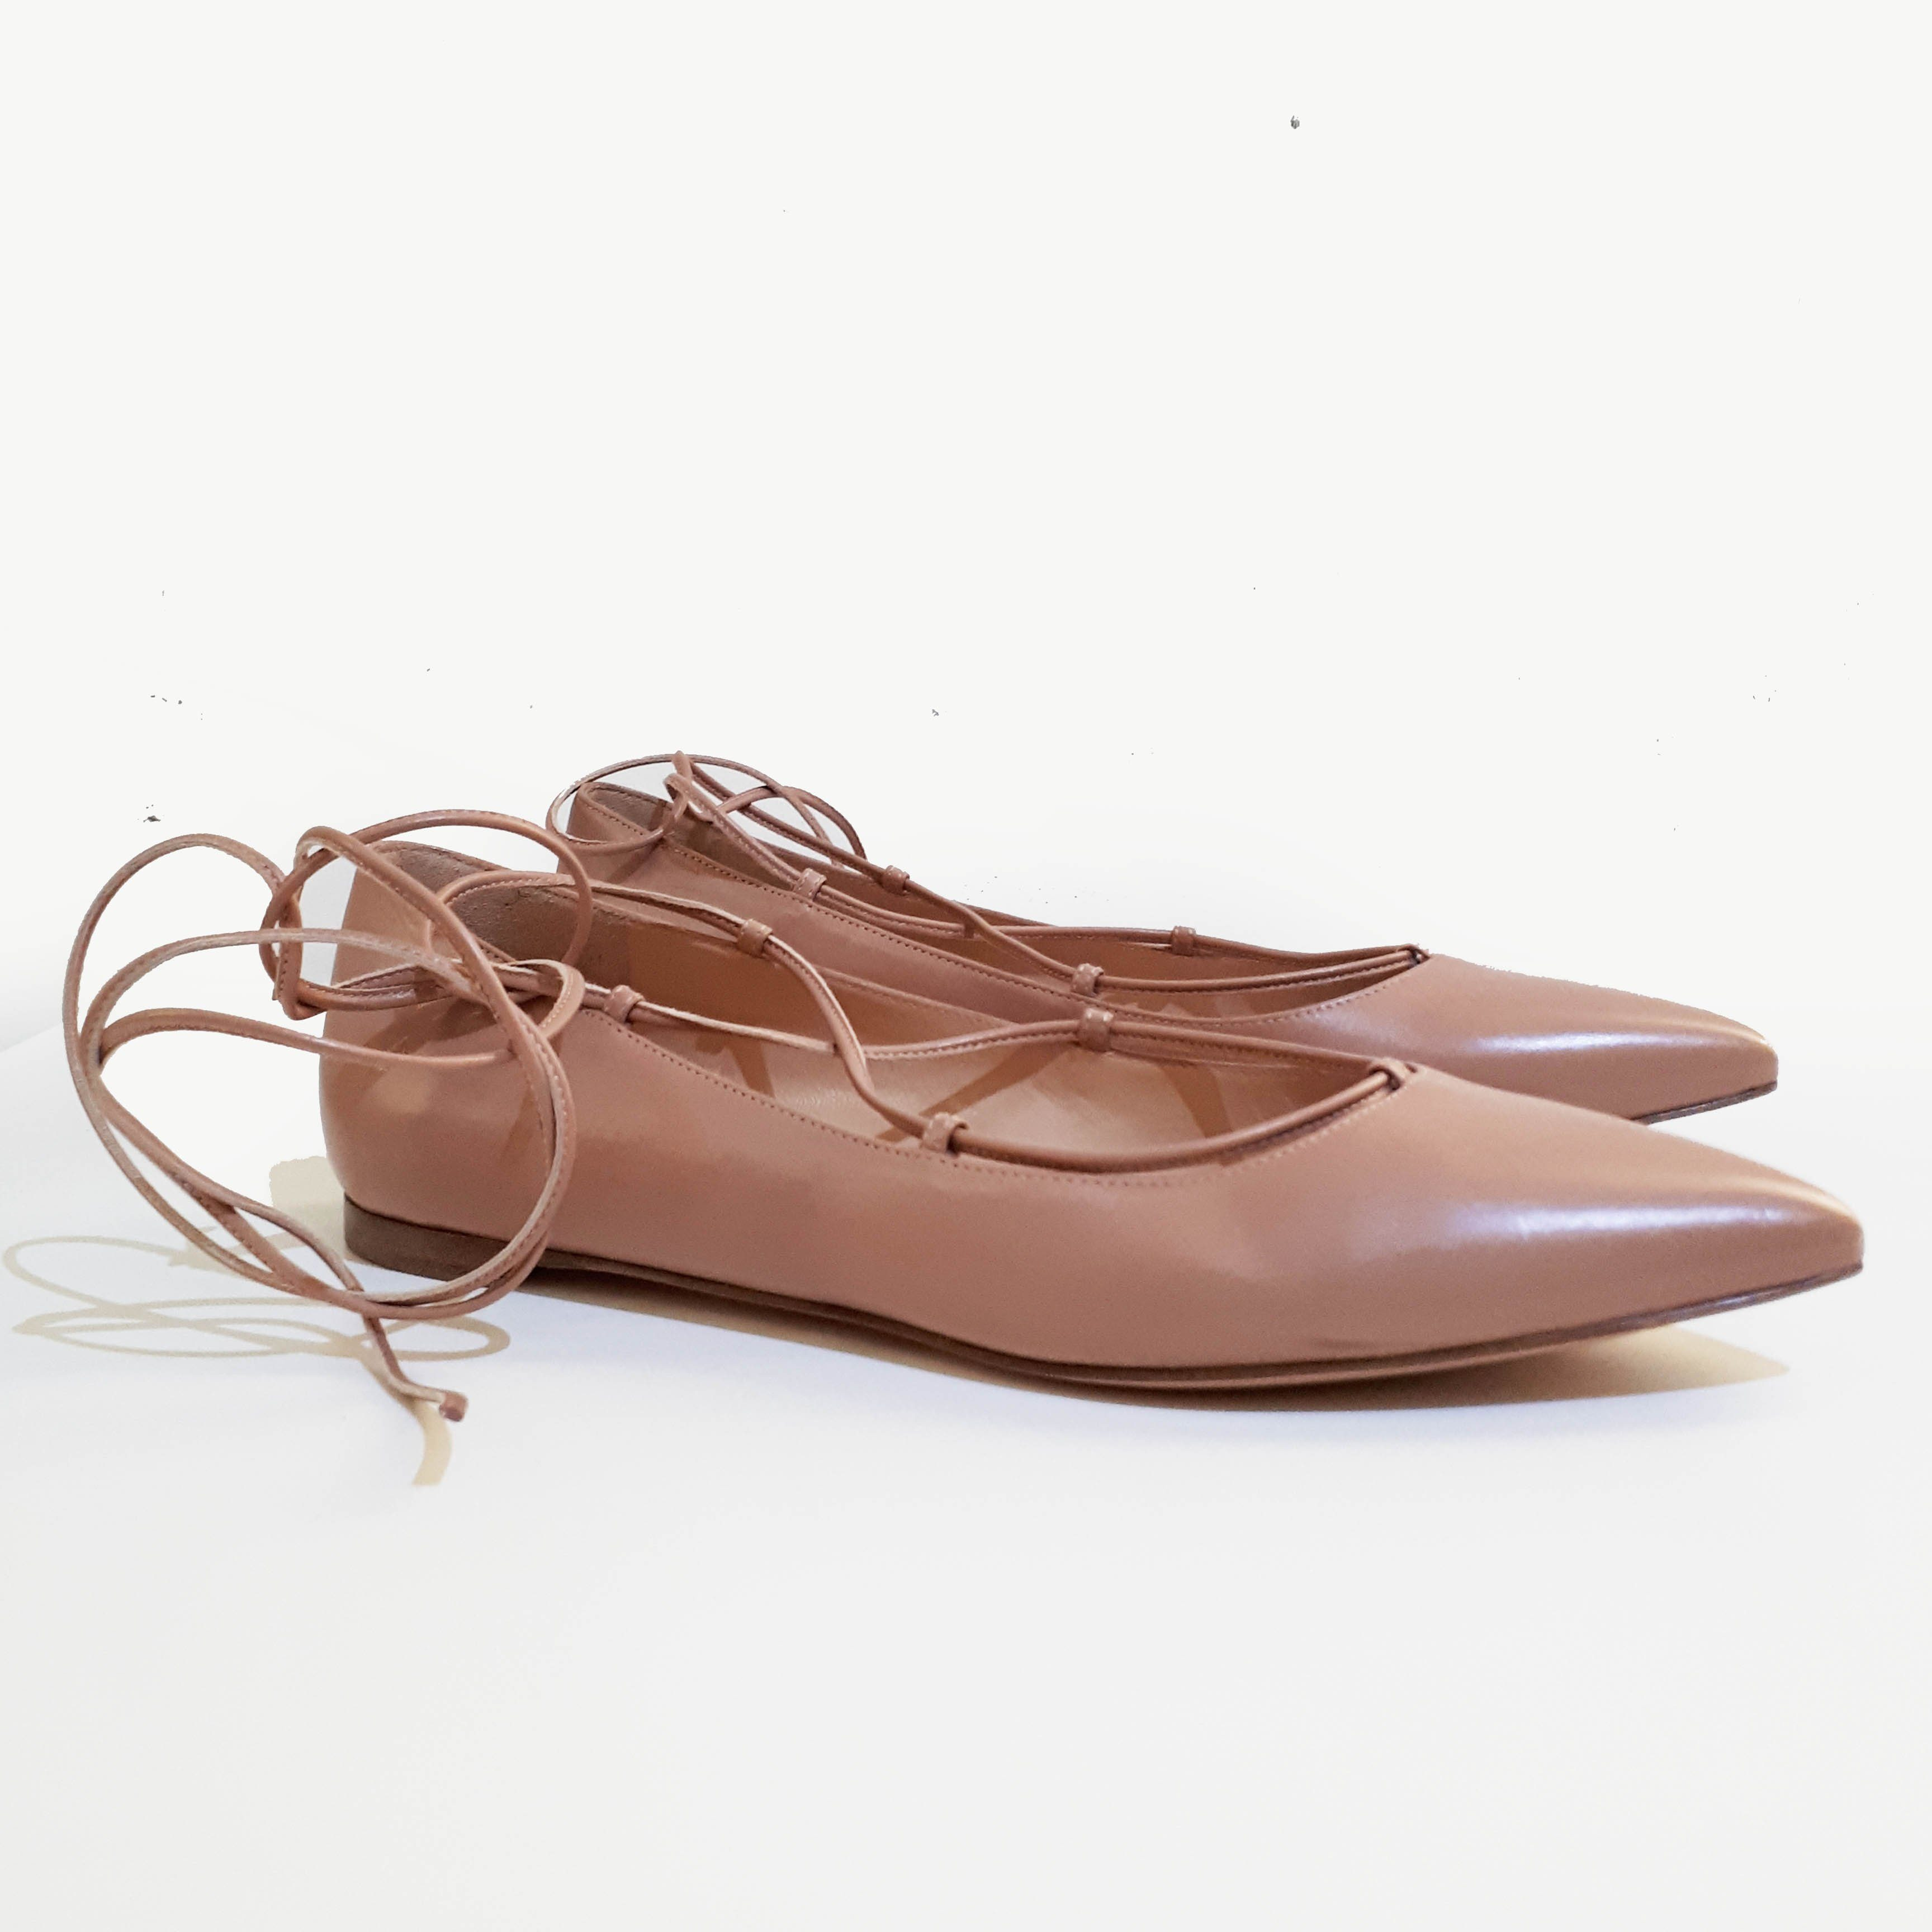 Gianvito Rossi Beige Pointed Toe Lace-up Flats